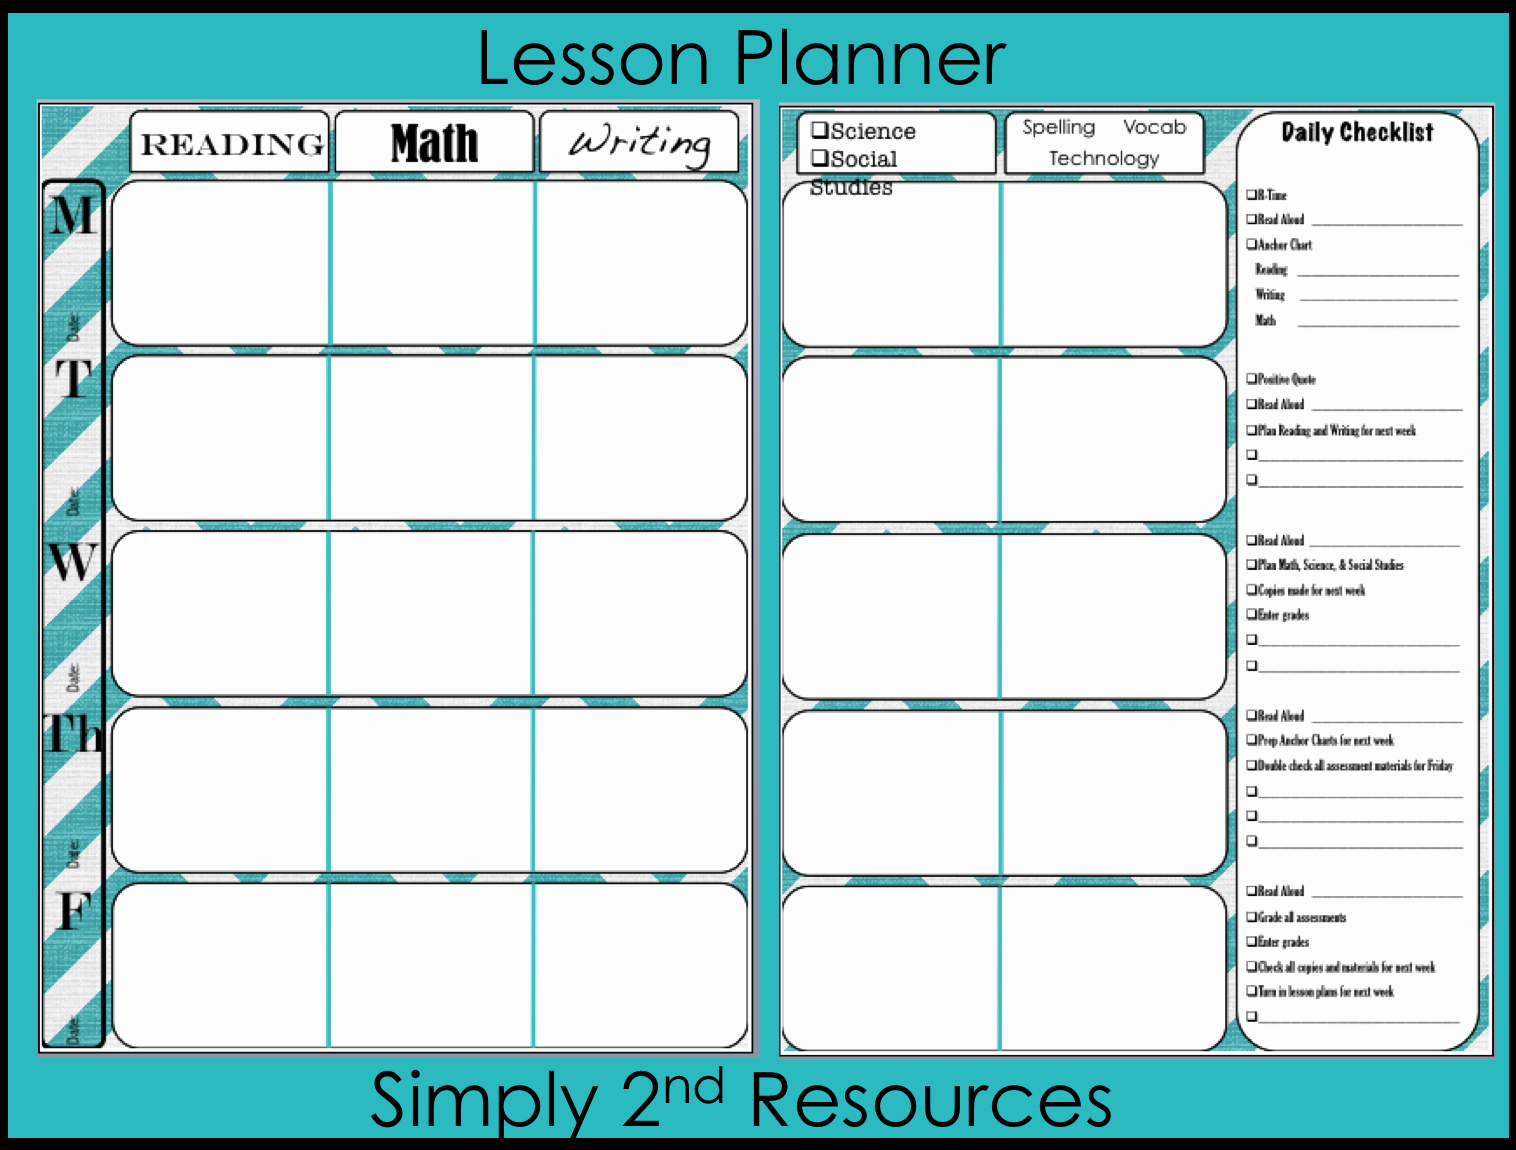 Free Lesson Plan Template Best Of Simply 2nd Resources Throwback Thursday Linky